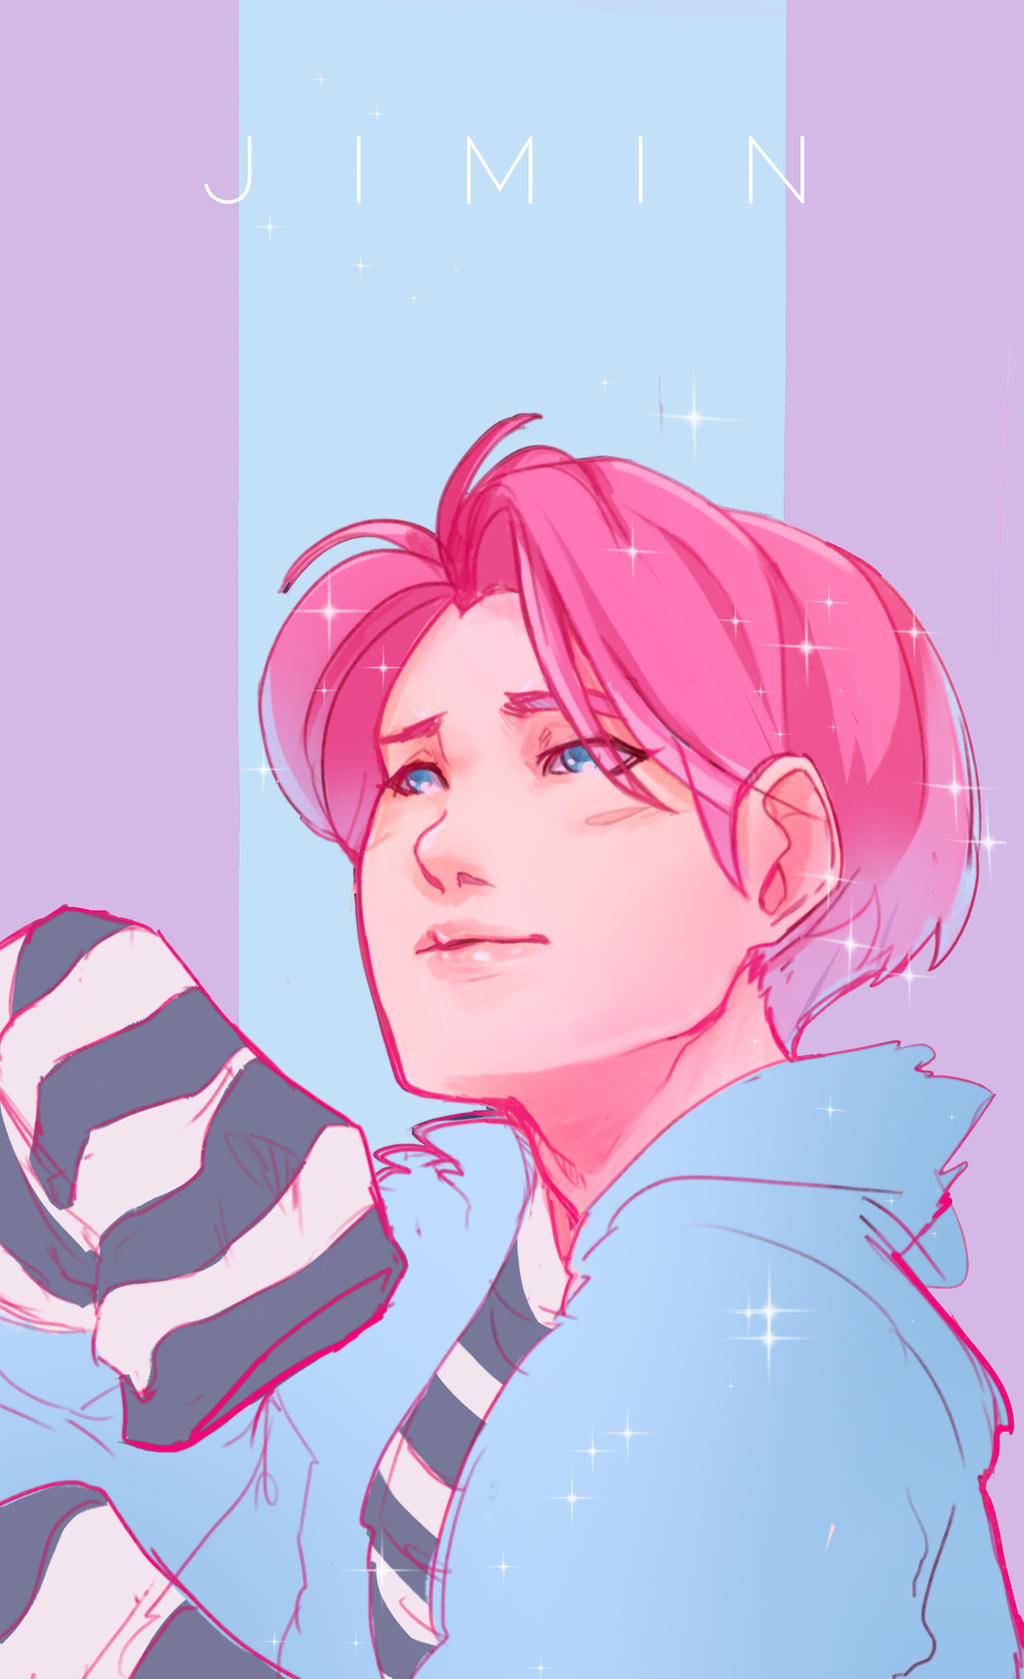 Bts Jimin By Engerklaux On Deviantart